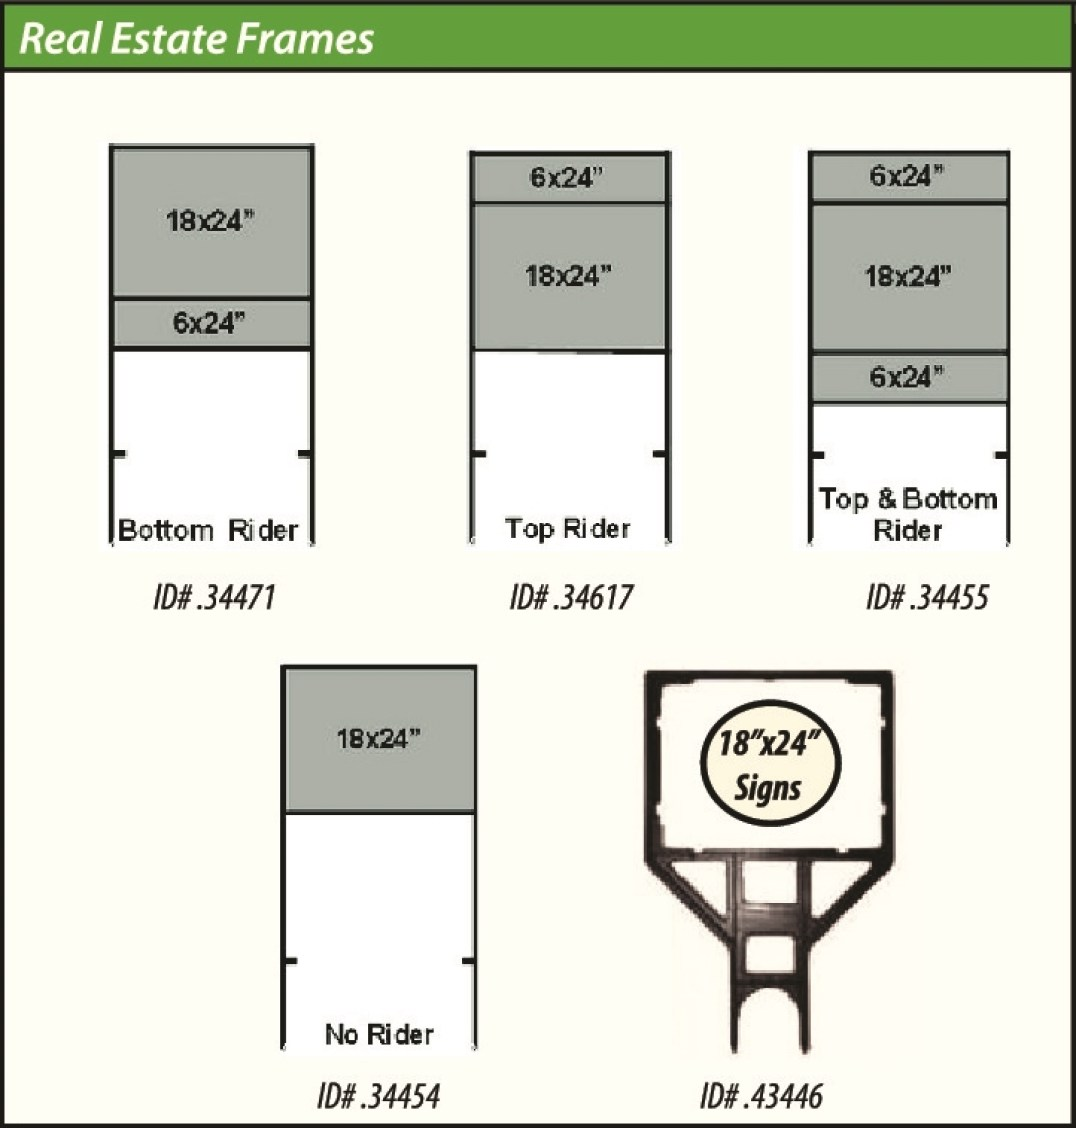 Sign-Authority Real Estate Frames